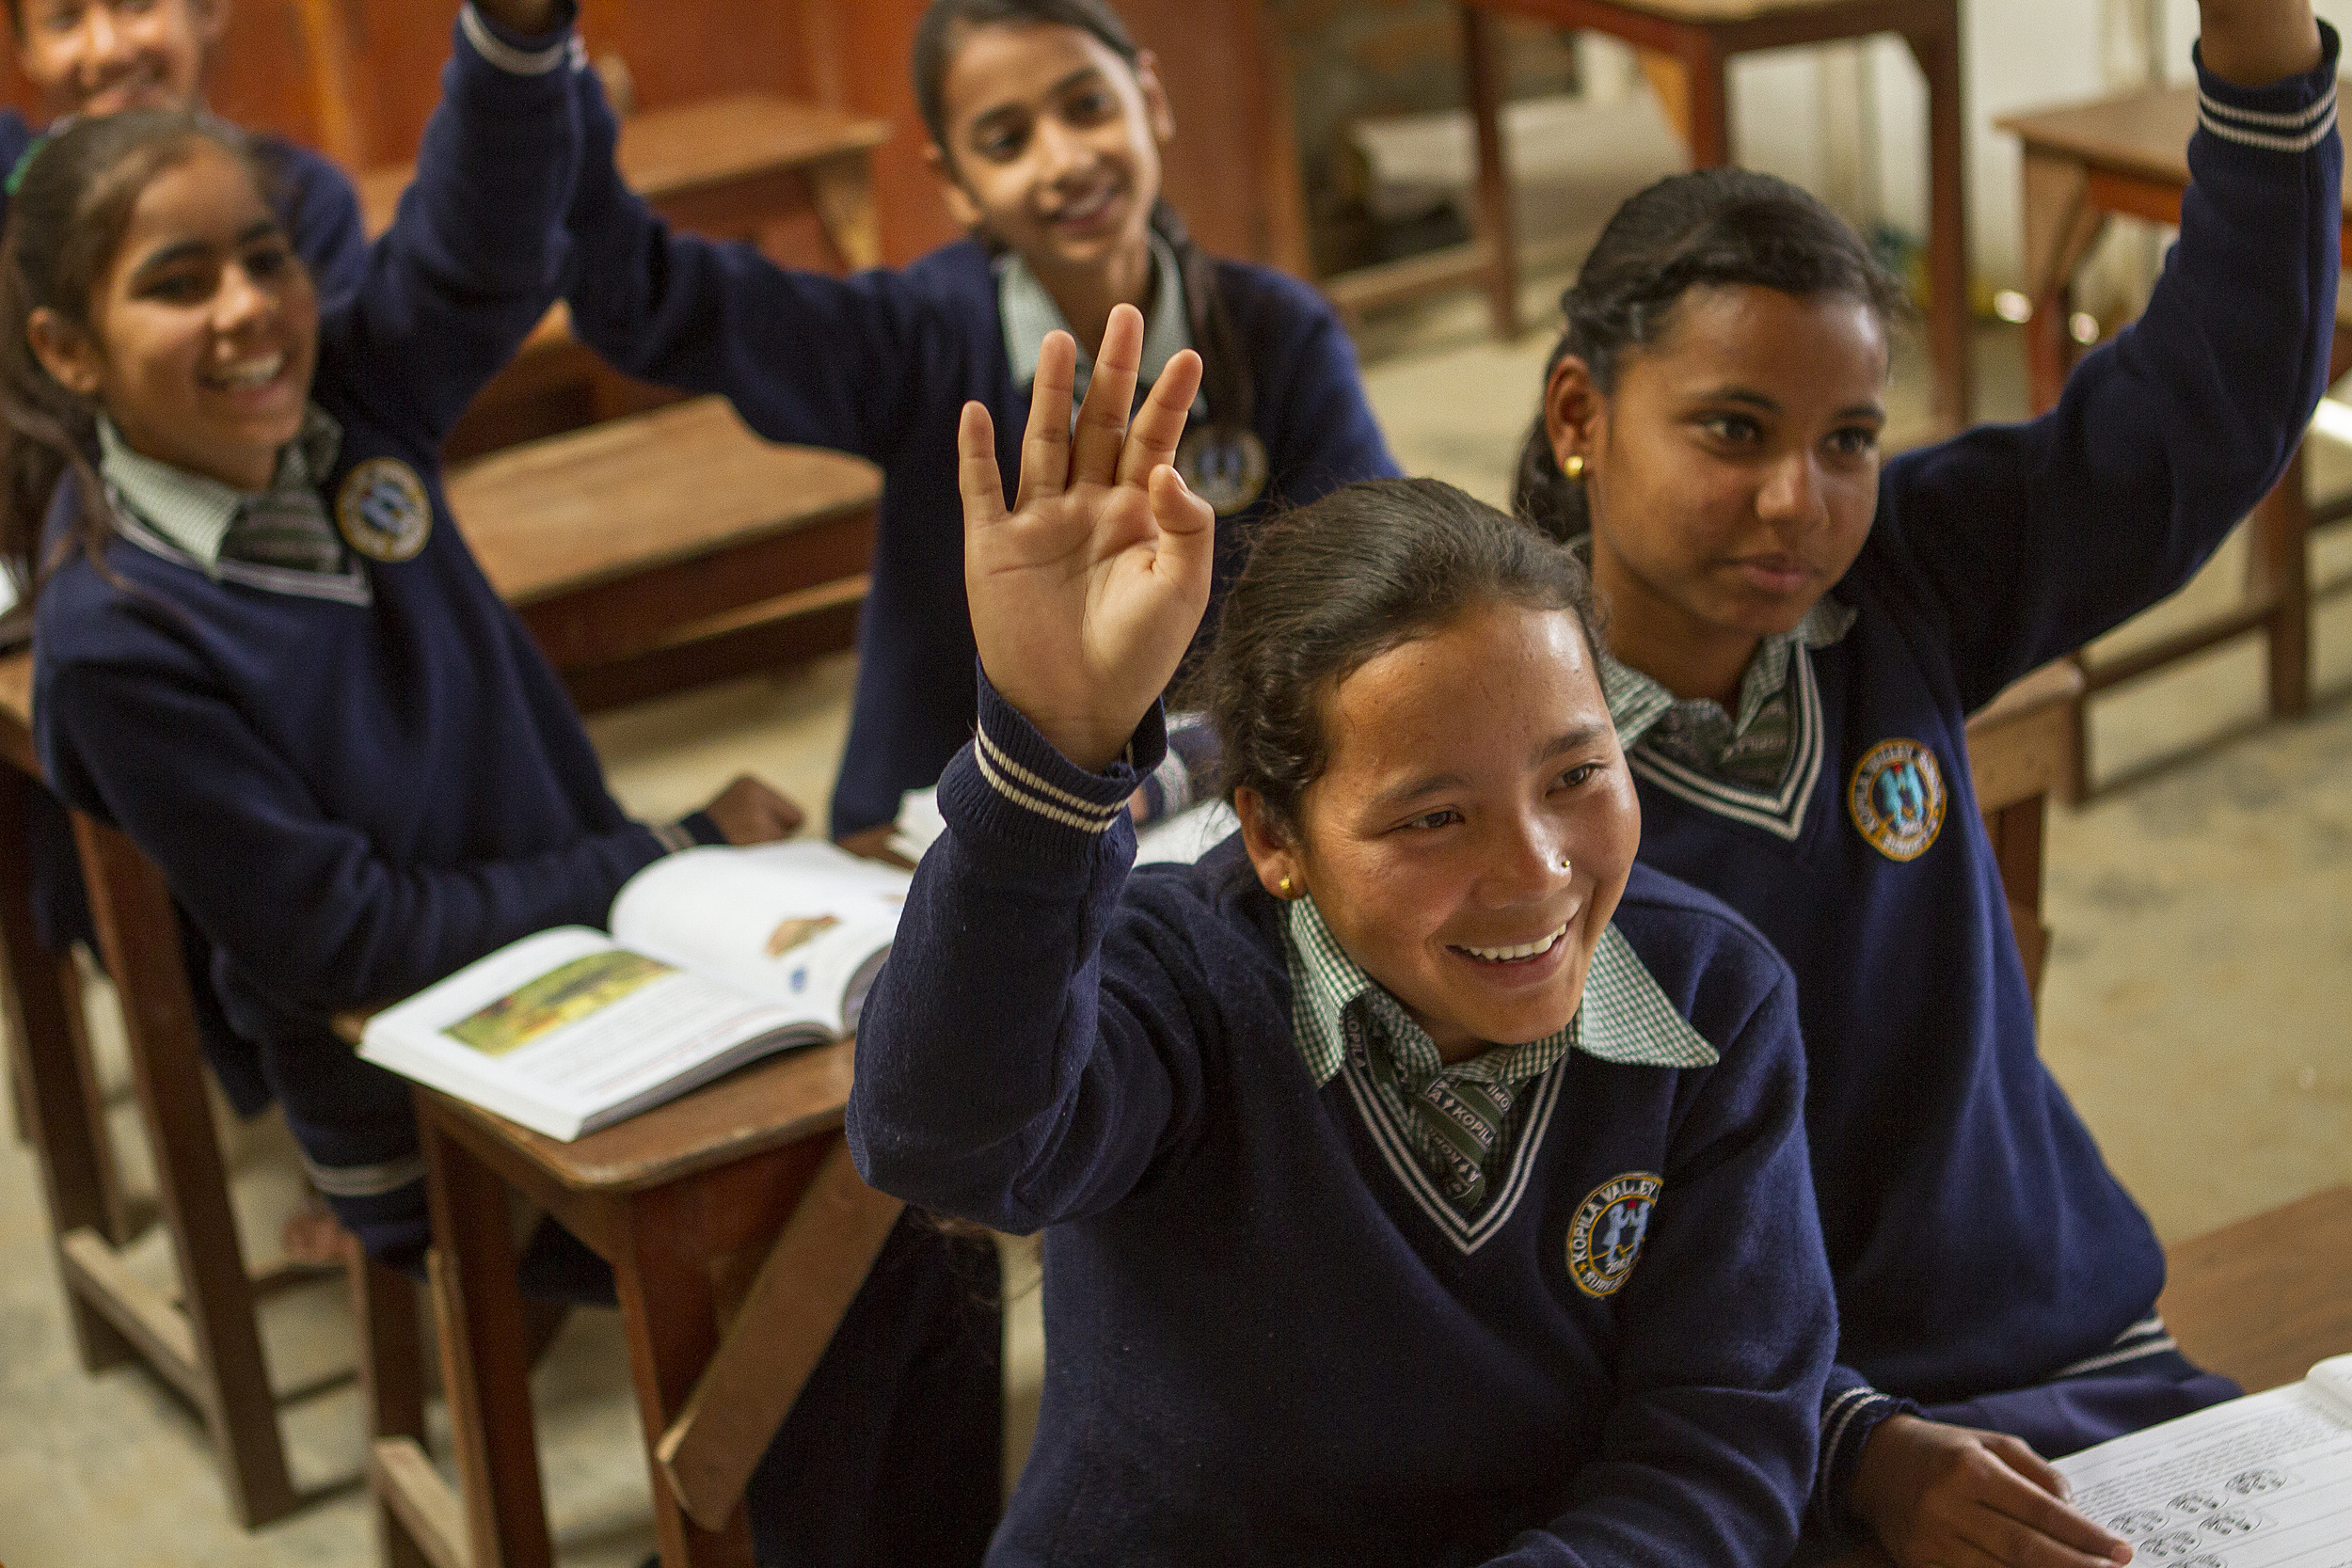 She's the First Scholar and tenth grader Roshni S. raises her hand in school in Nepal, March 2015. (photo by Kate Lord)